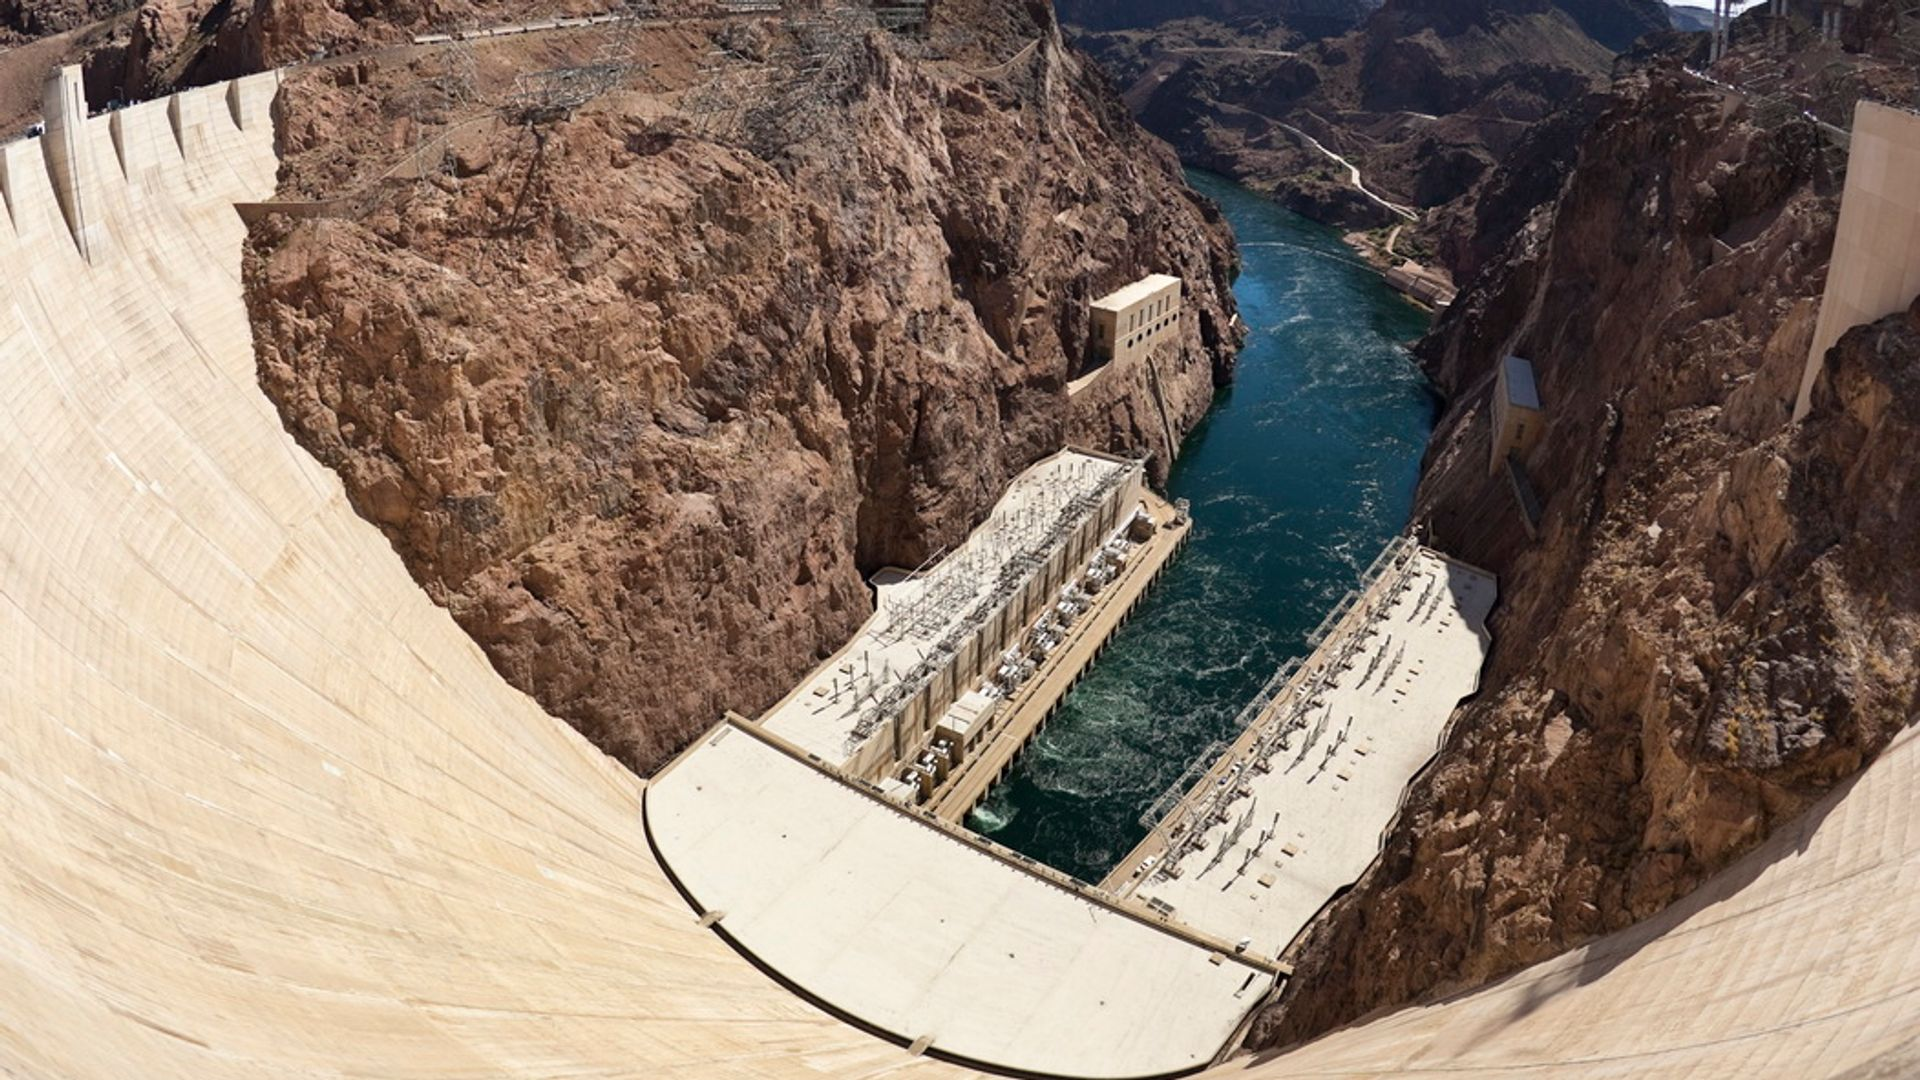 Colorado river from the top of the dam